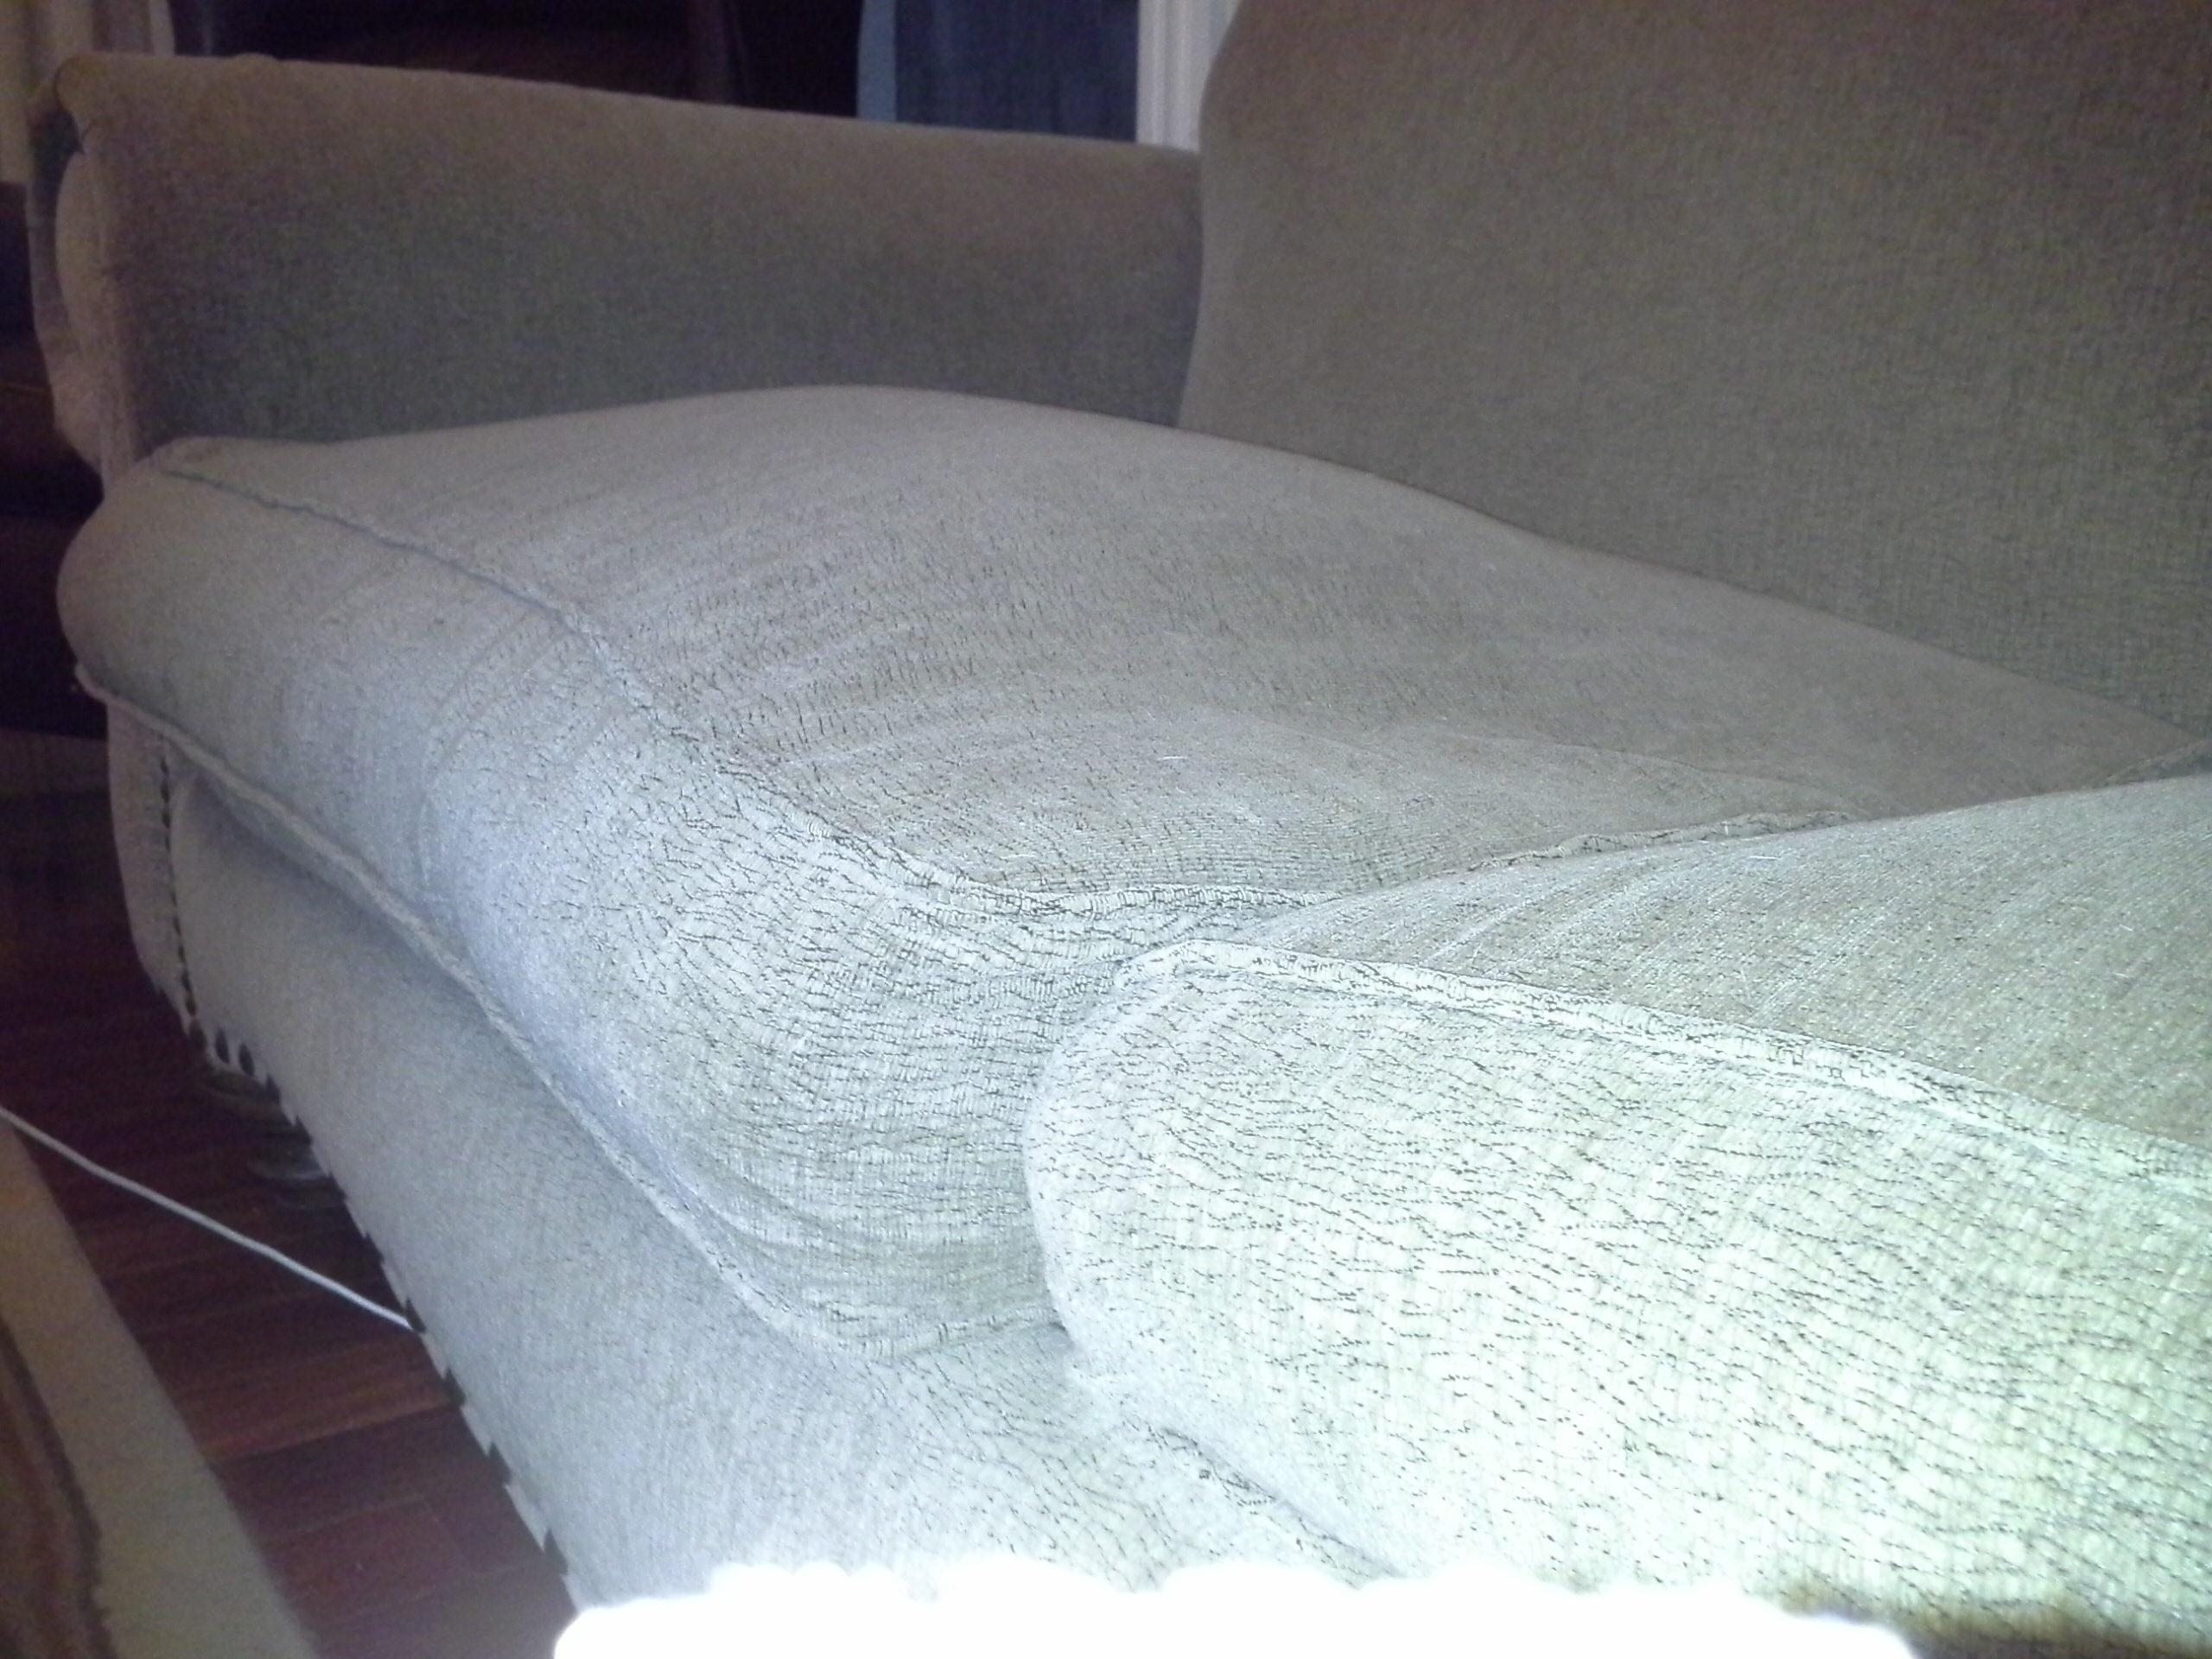 Top 129 Reviews And Complaints About Broyhill Pertaining To Broyhill Larissa Sofas (View 14 of 20)